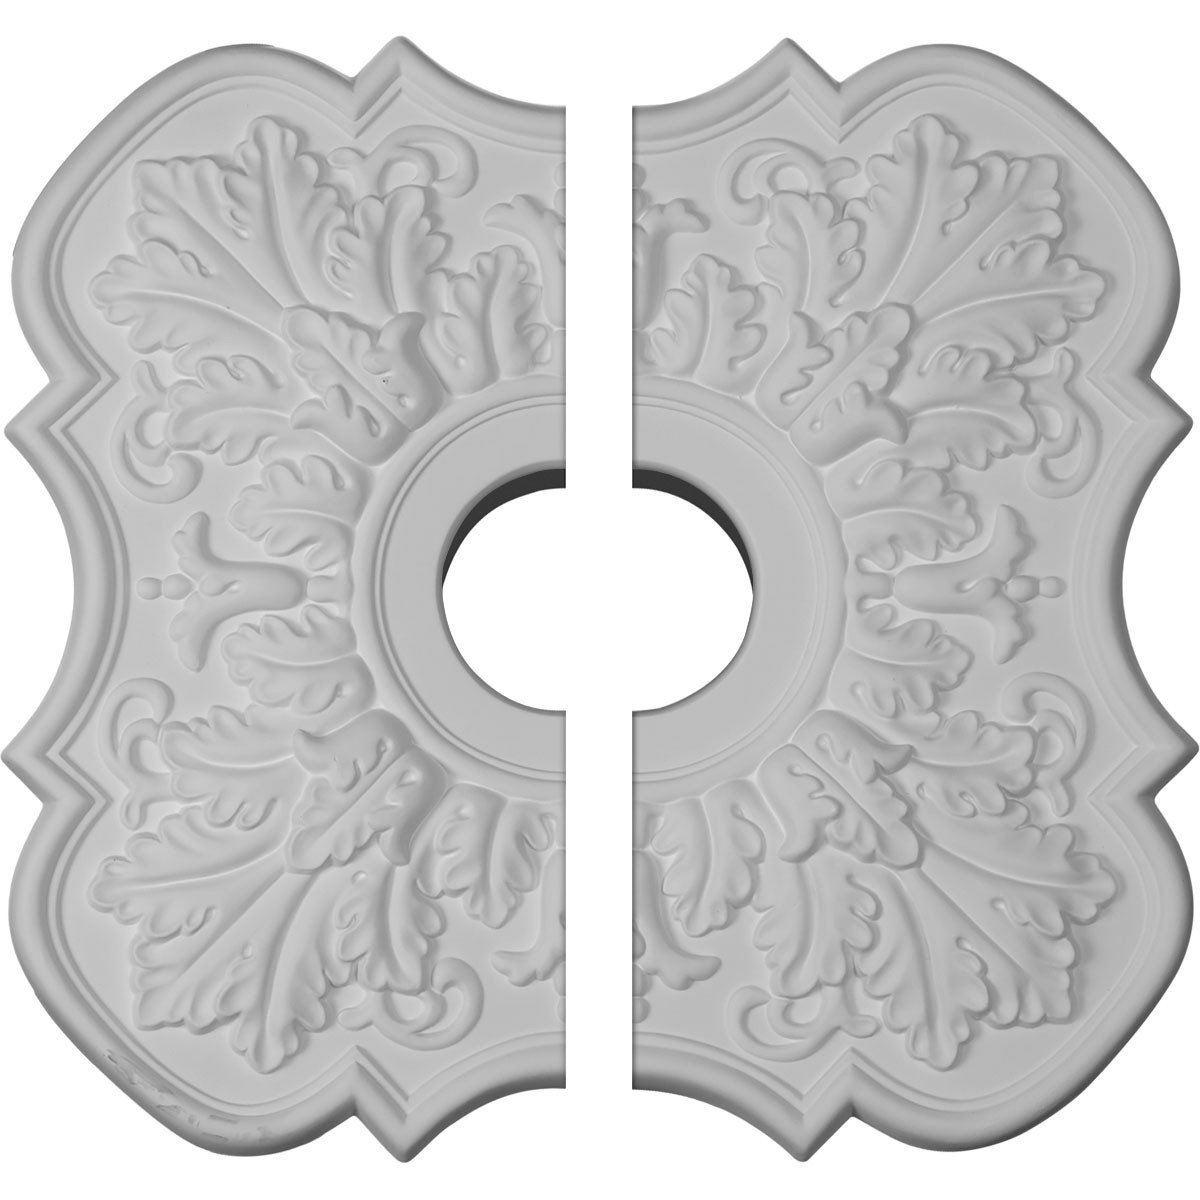 """EM-CM17PE2 - 17 3/4""""OD x 3 1/8""""ID x 1""""P Peralta Ceiling Medallion, Two Piece (Fits Canopies up to 4 5/8"""")"""